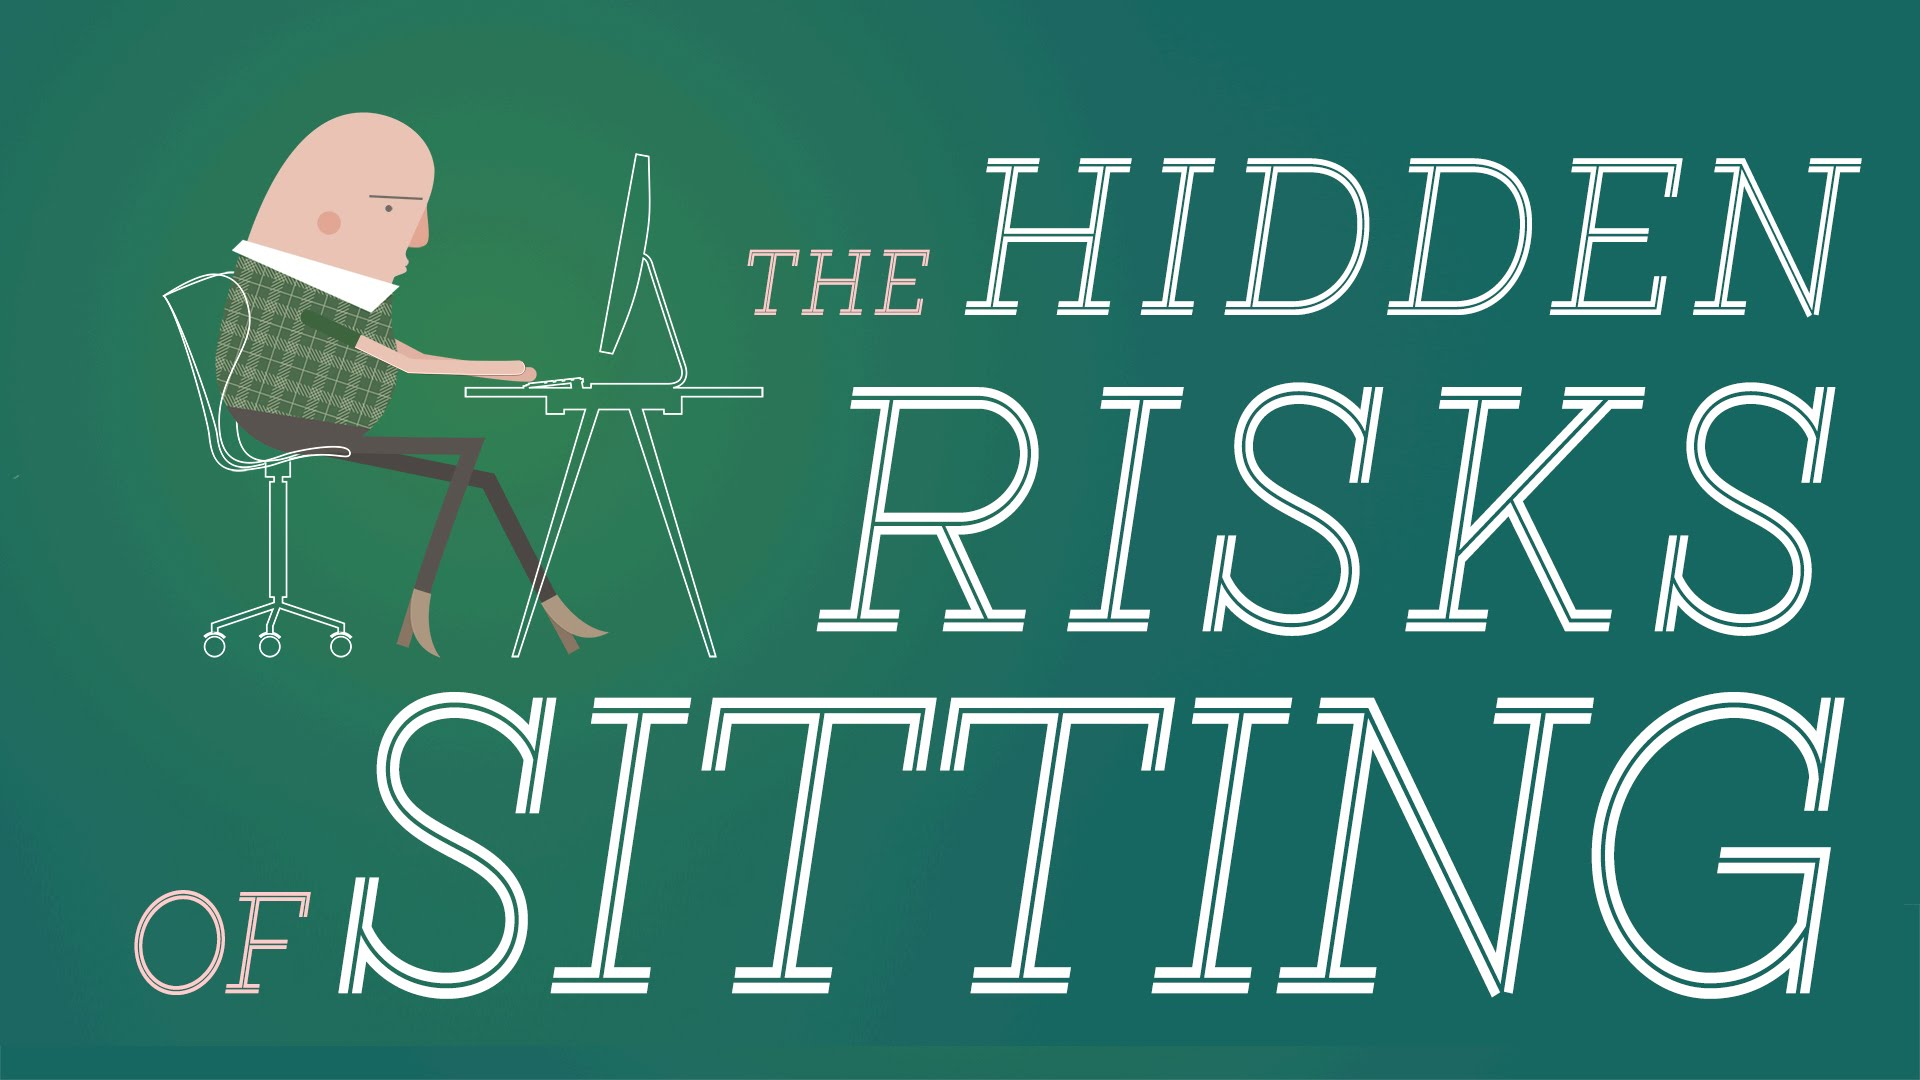 Why sitting is bad for you?